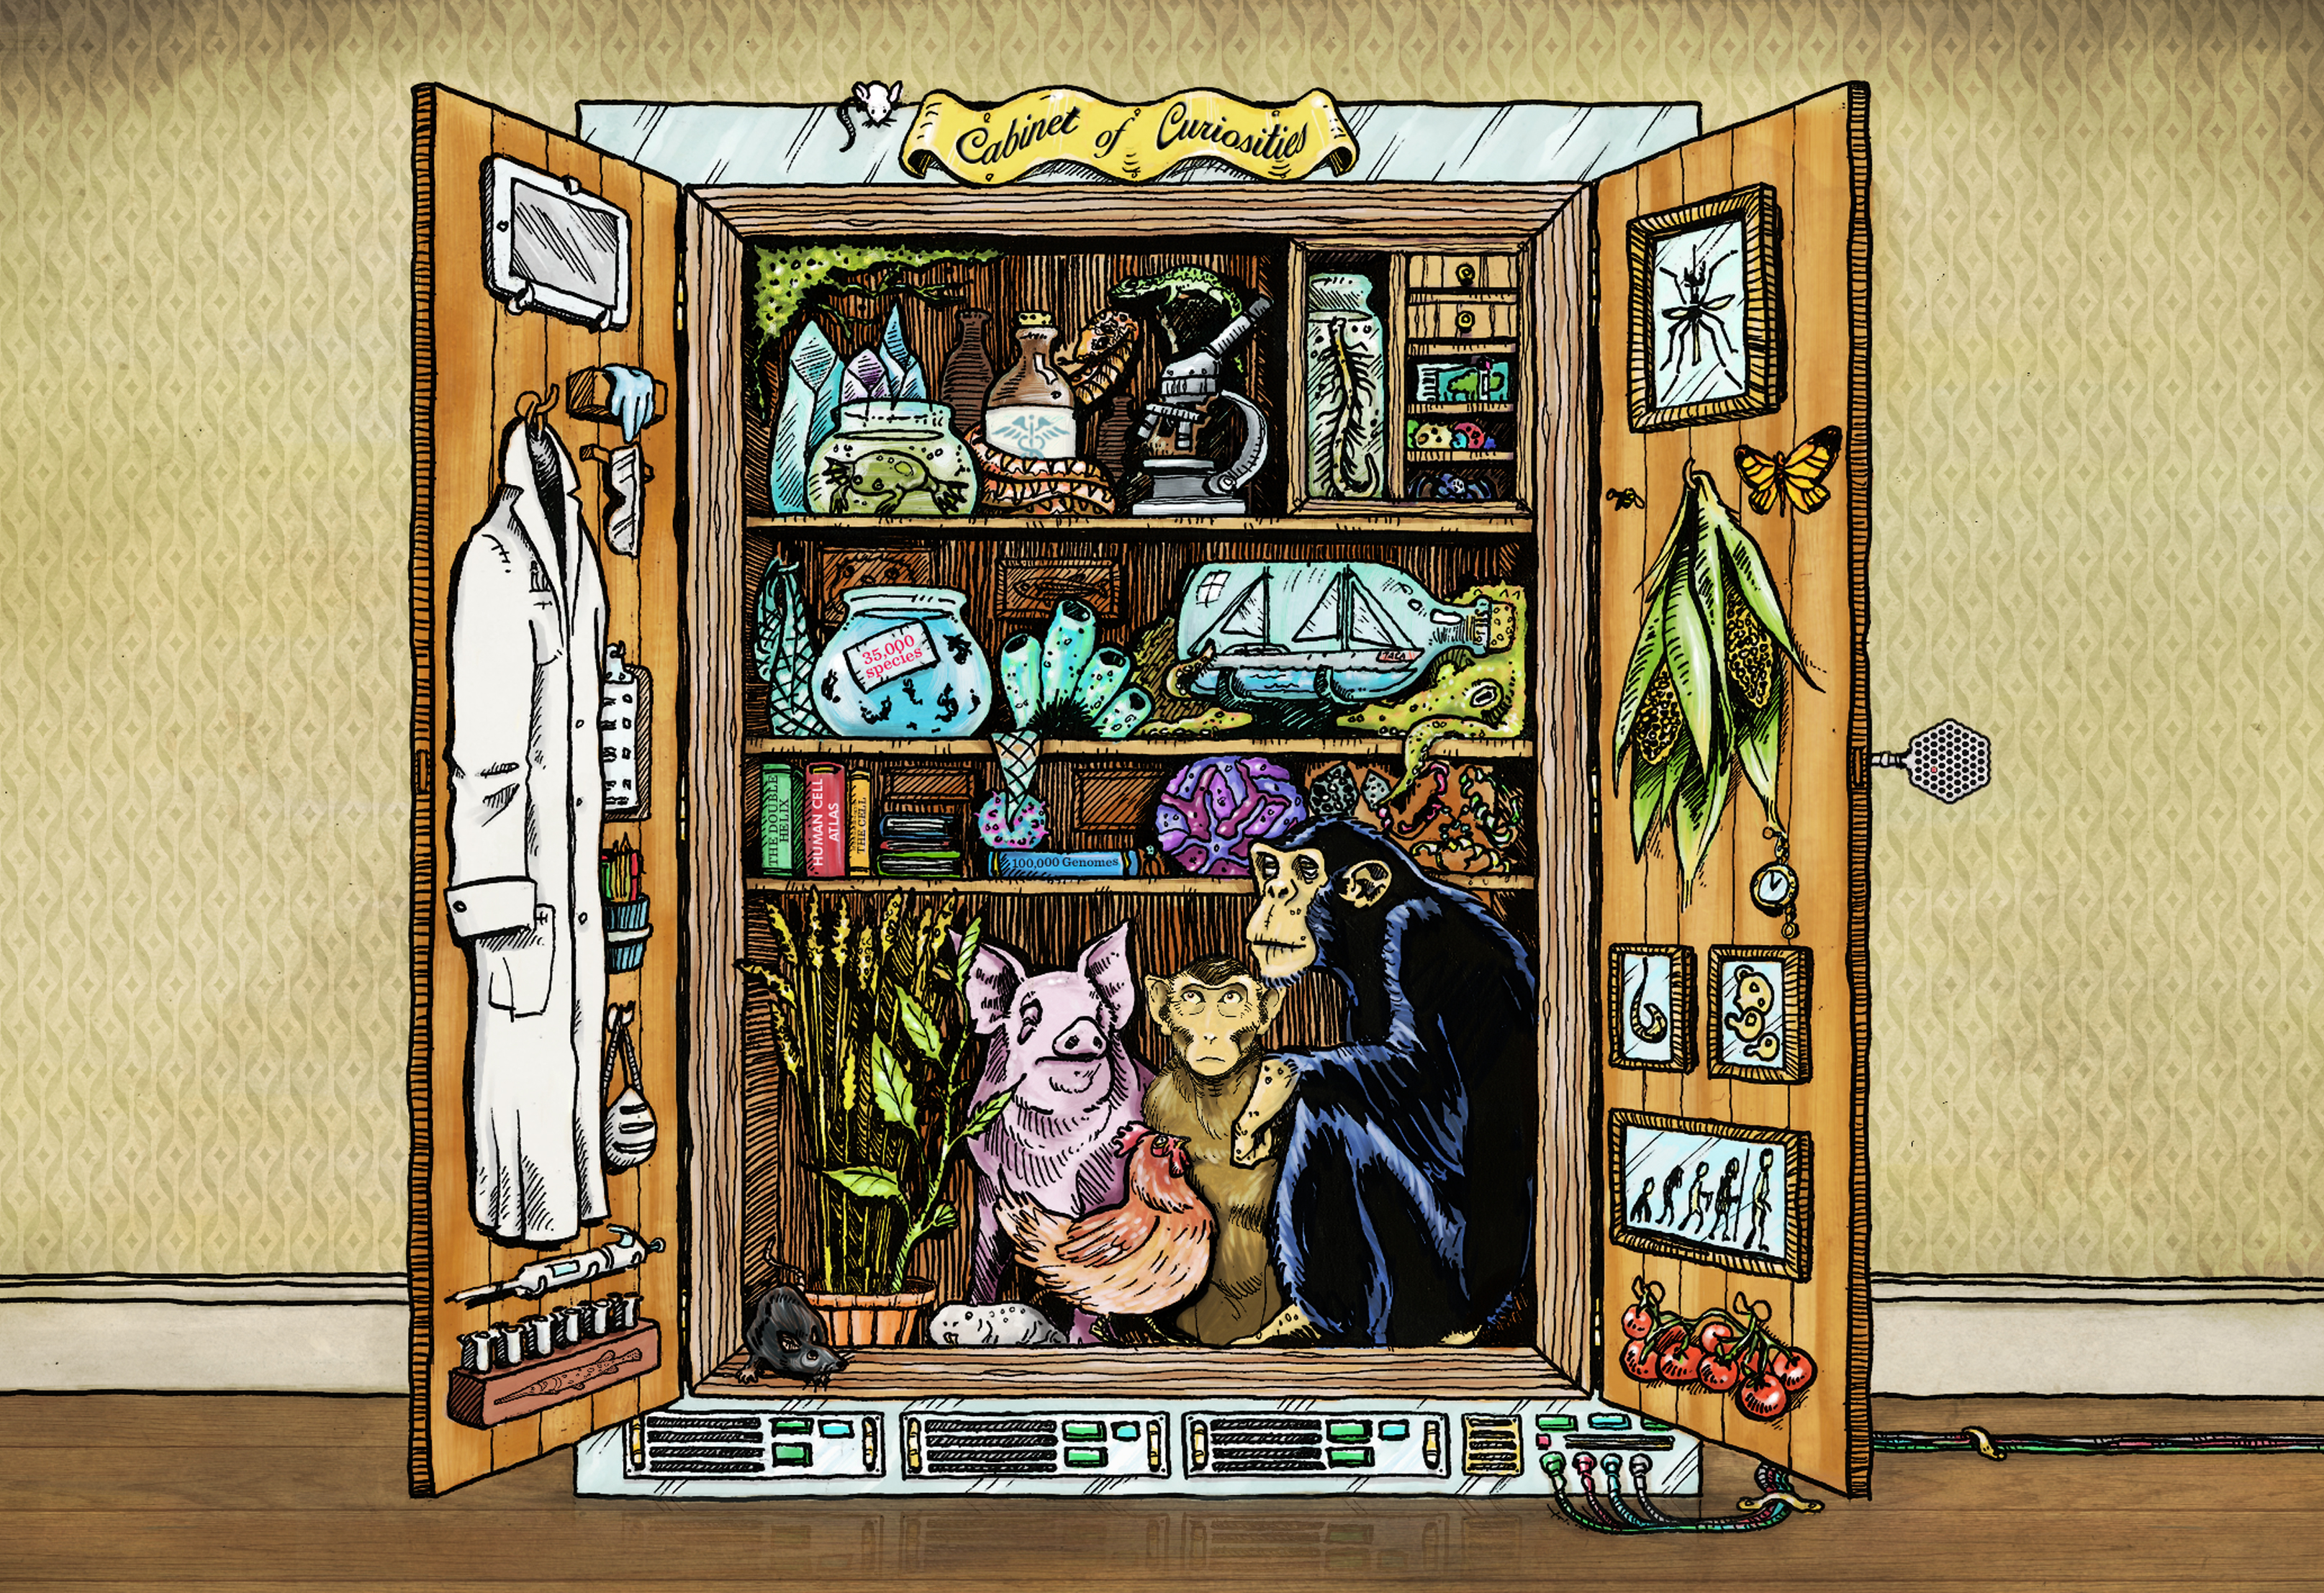 Artist interpretation of the database as a cabinet of curiosities